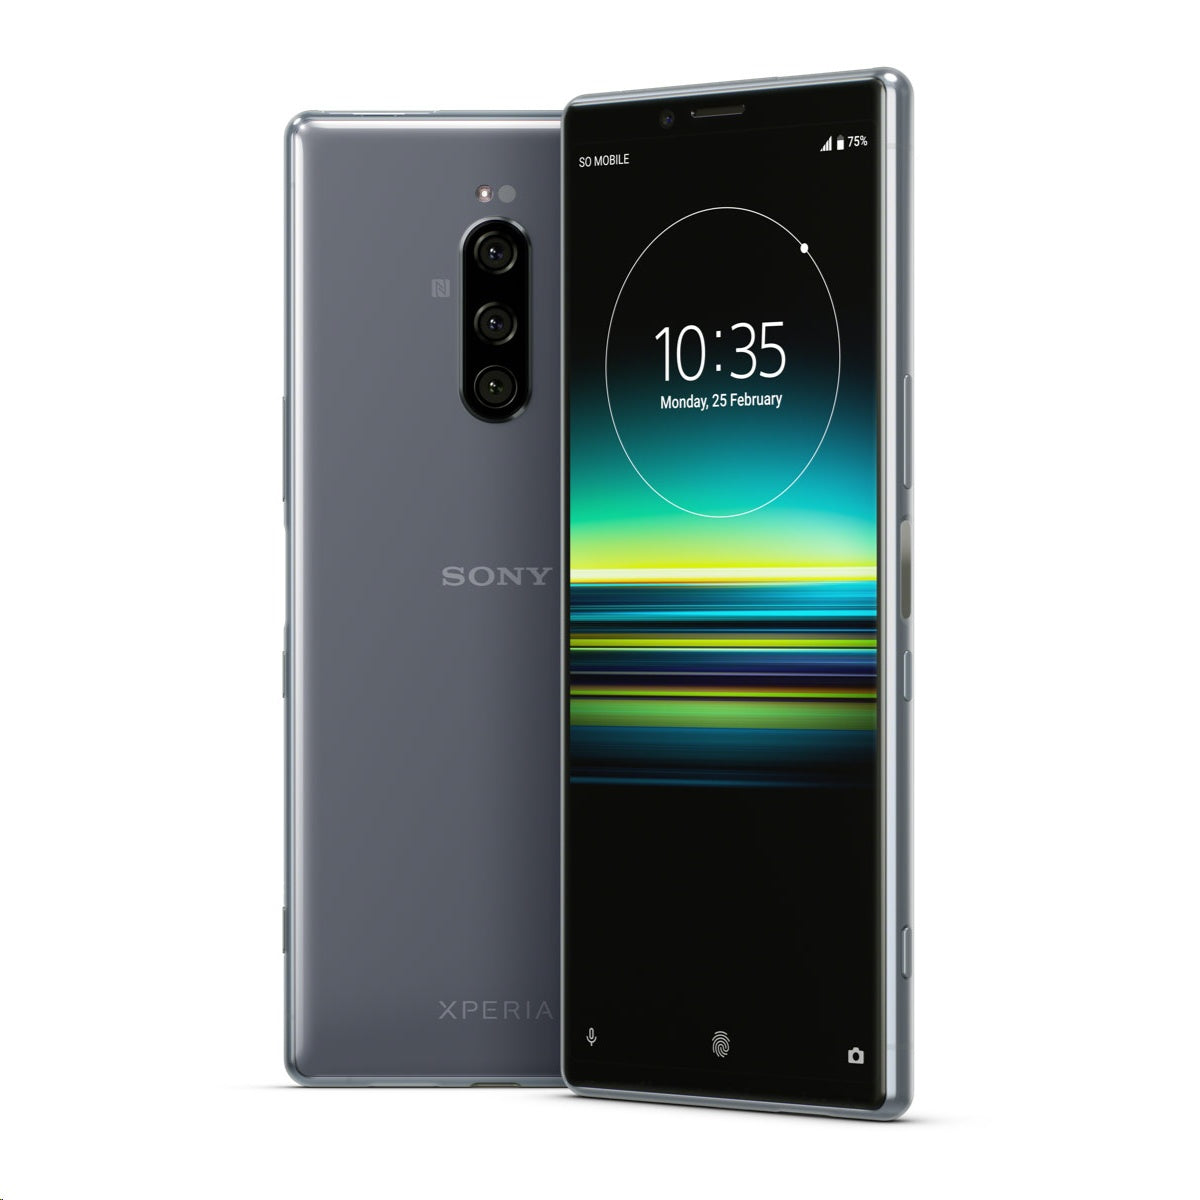 Sony Xperia 1 (128GB, Dual Sim, Gey, Special Import)-Smartphones (New)-Connected Devices